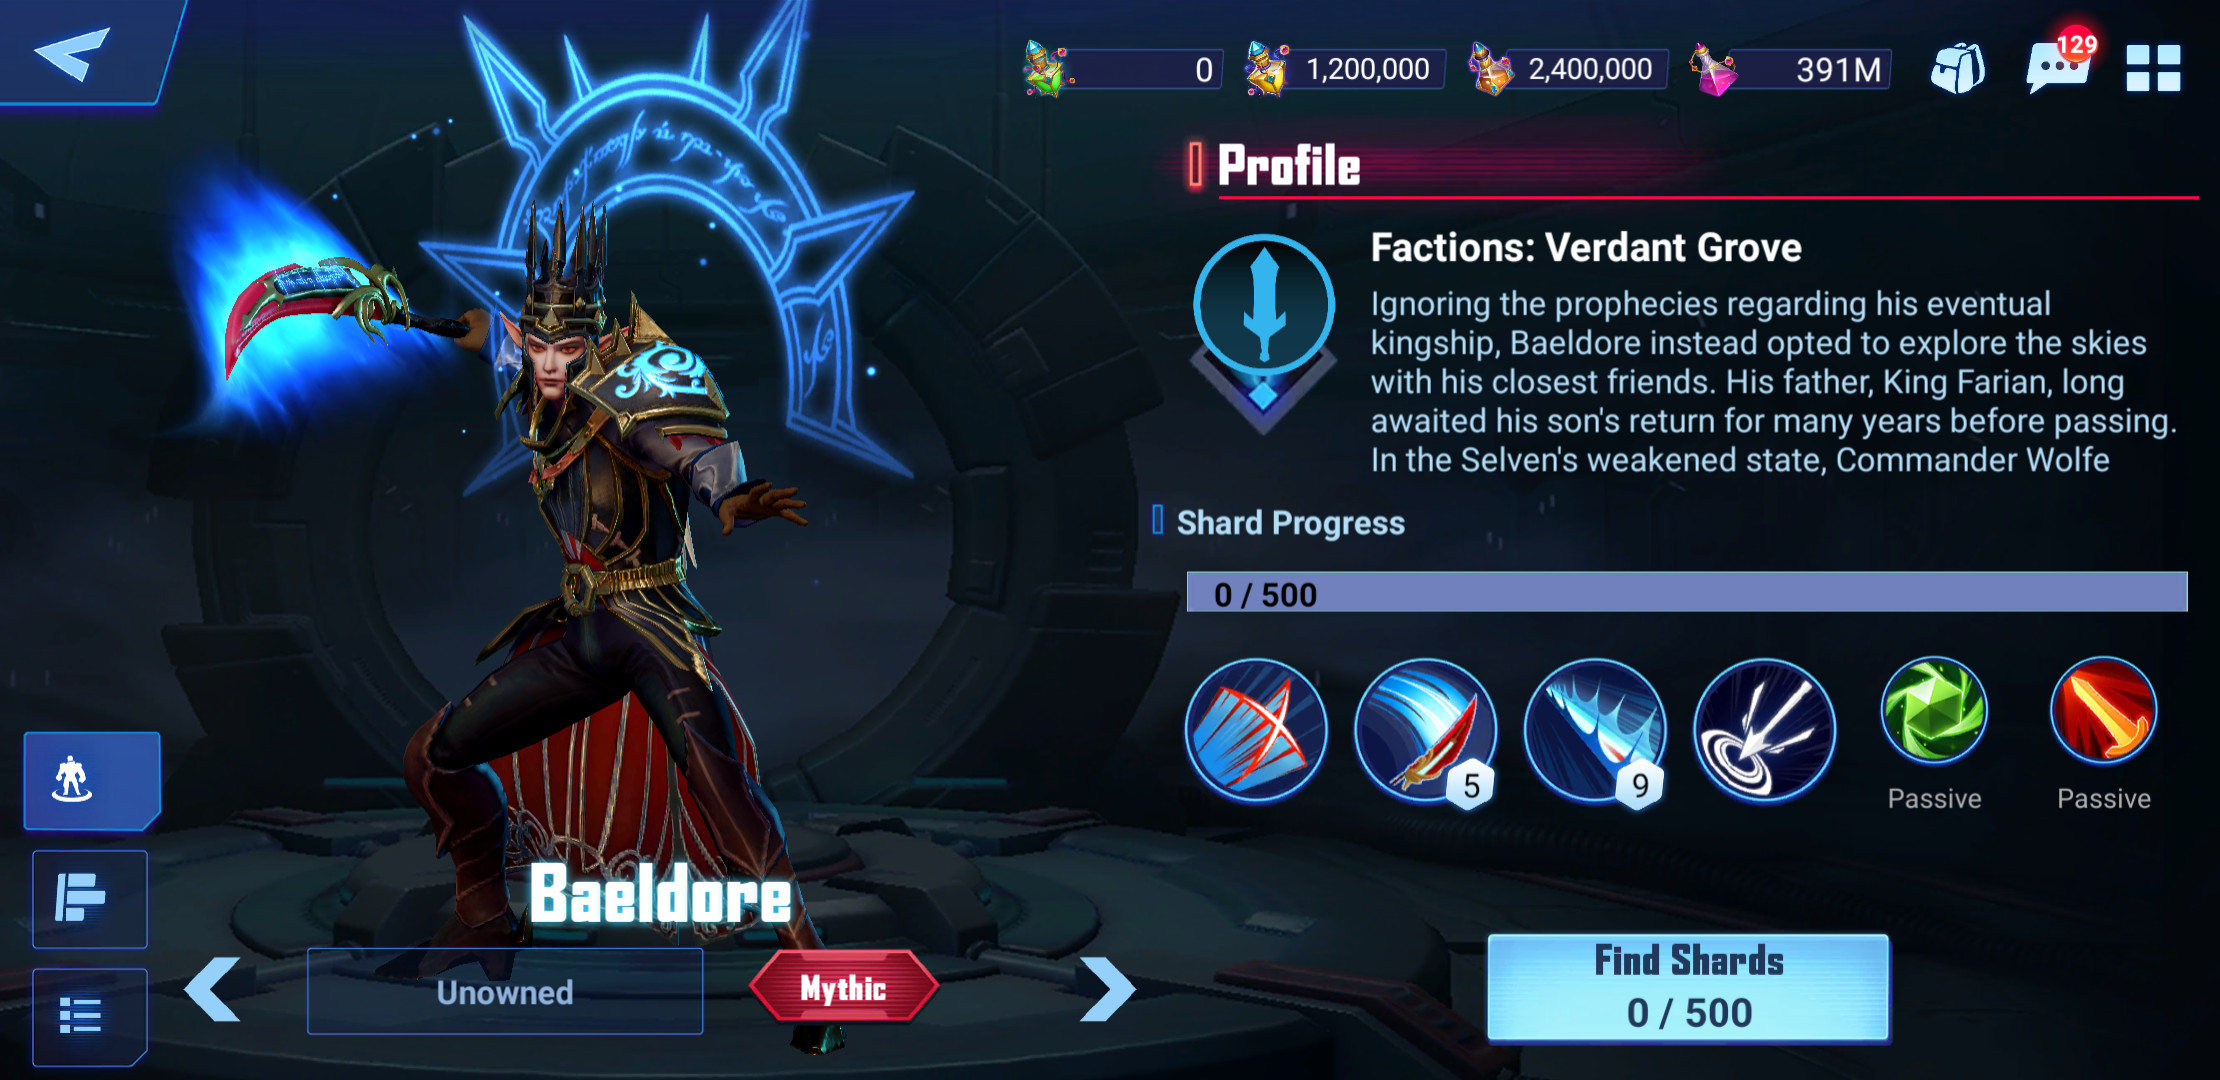 Baeldore's blade in-game character profile shot